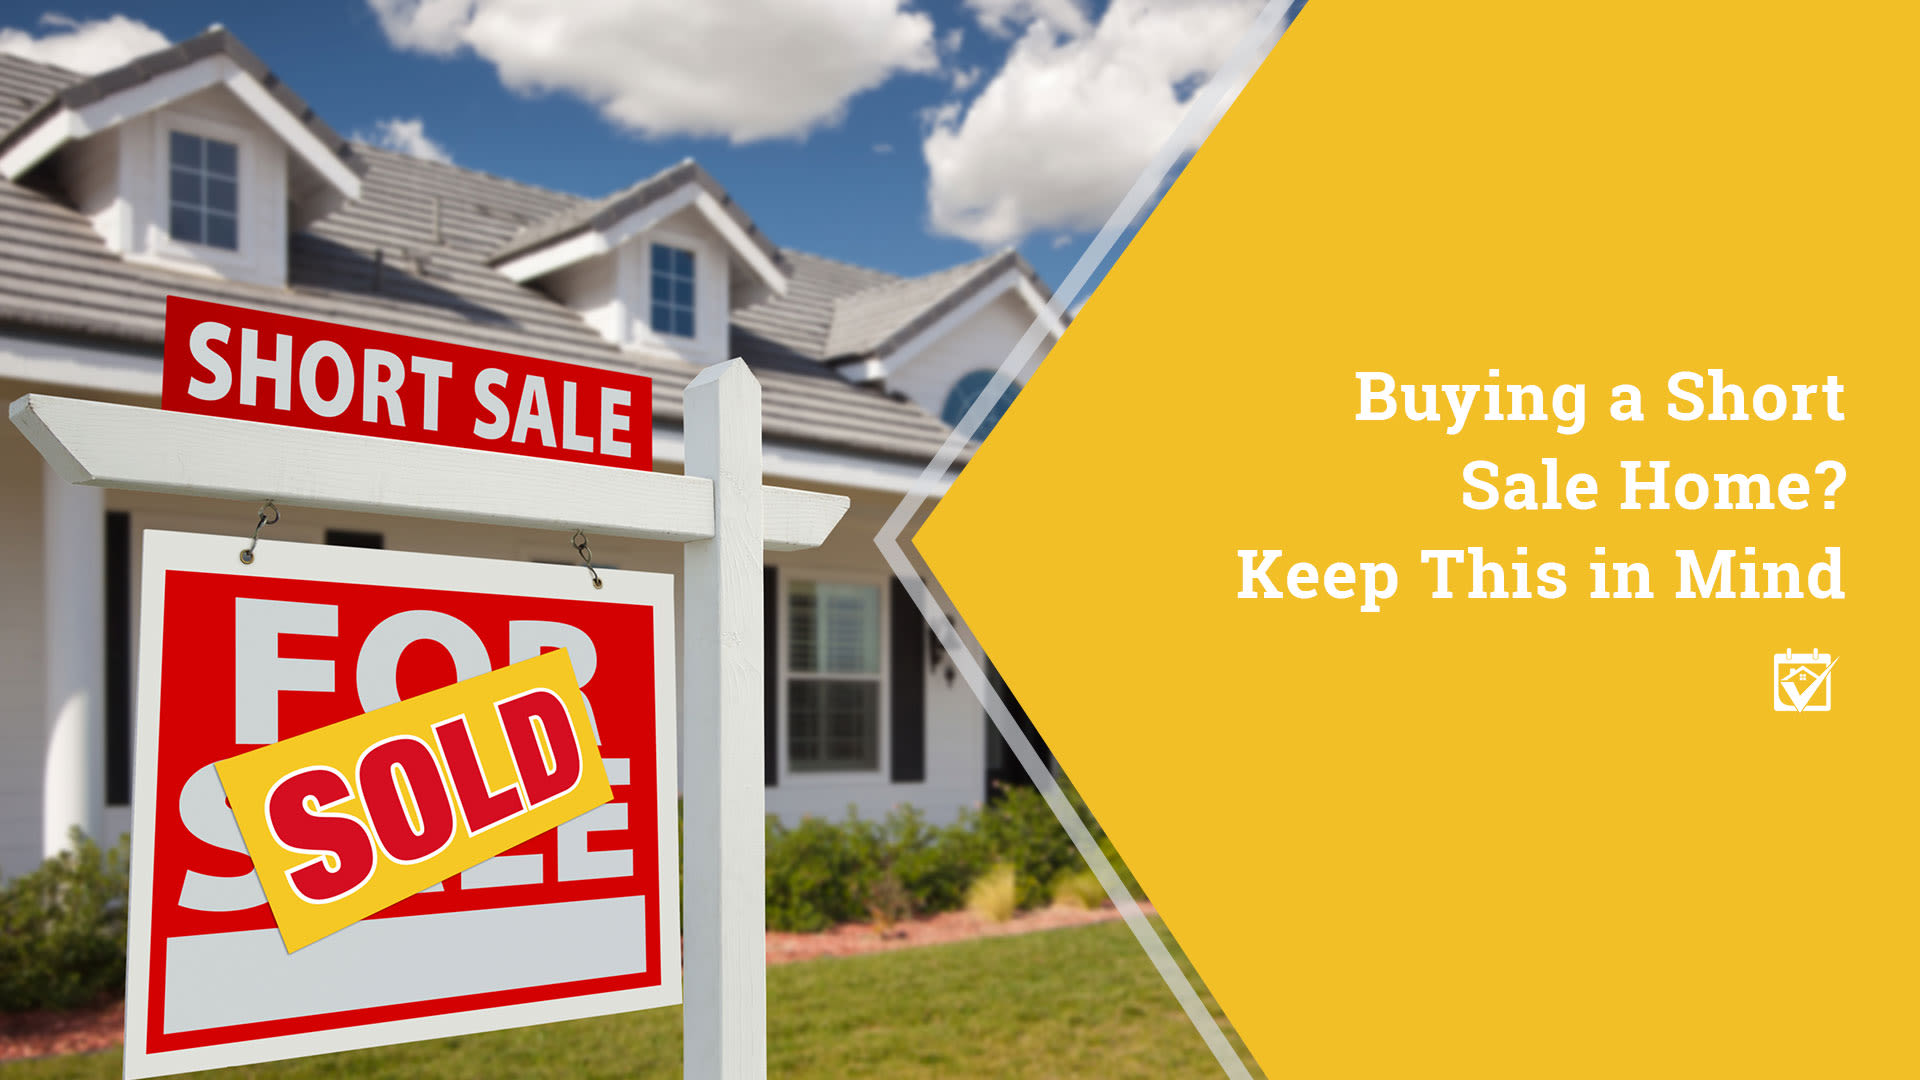 Buying a Short Sale Home? Keep This in Mind